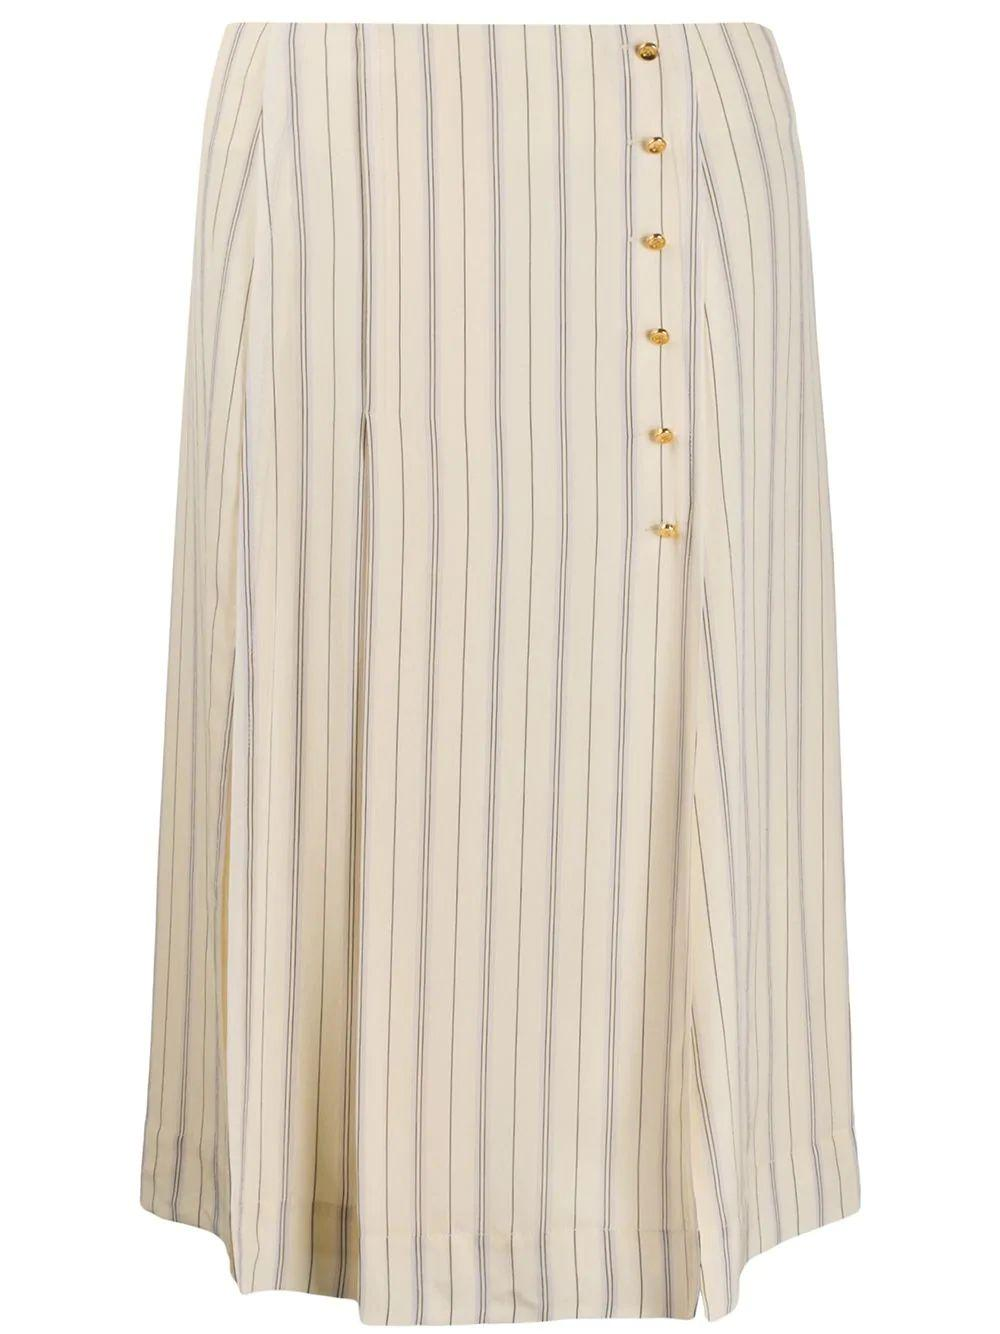 Stripe Print Crepe de Chine Skirt